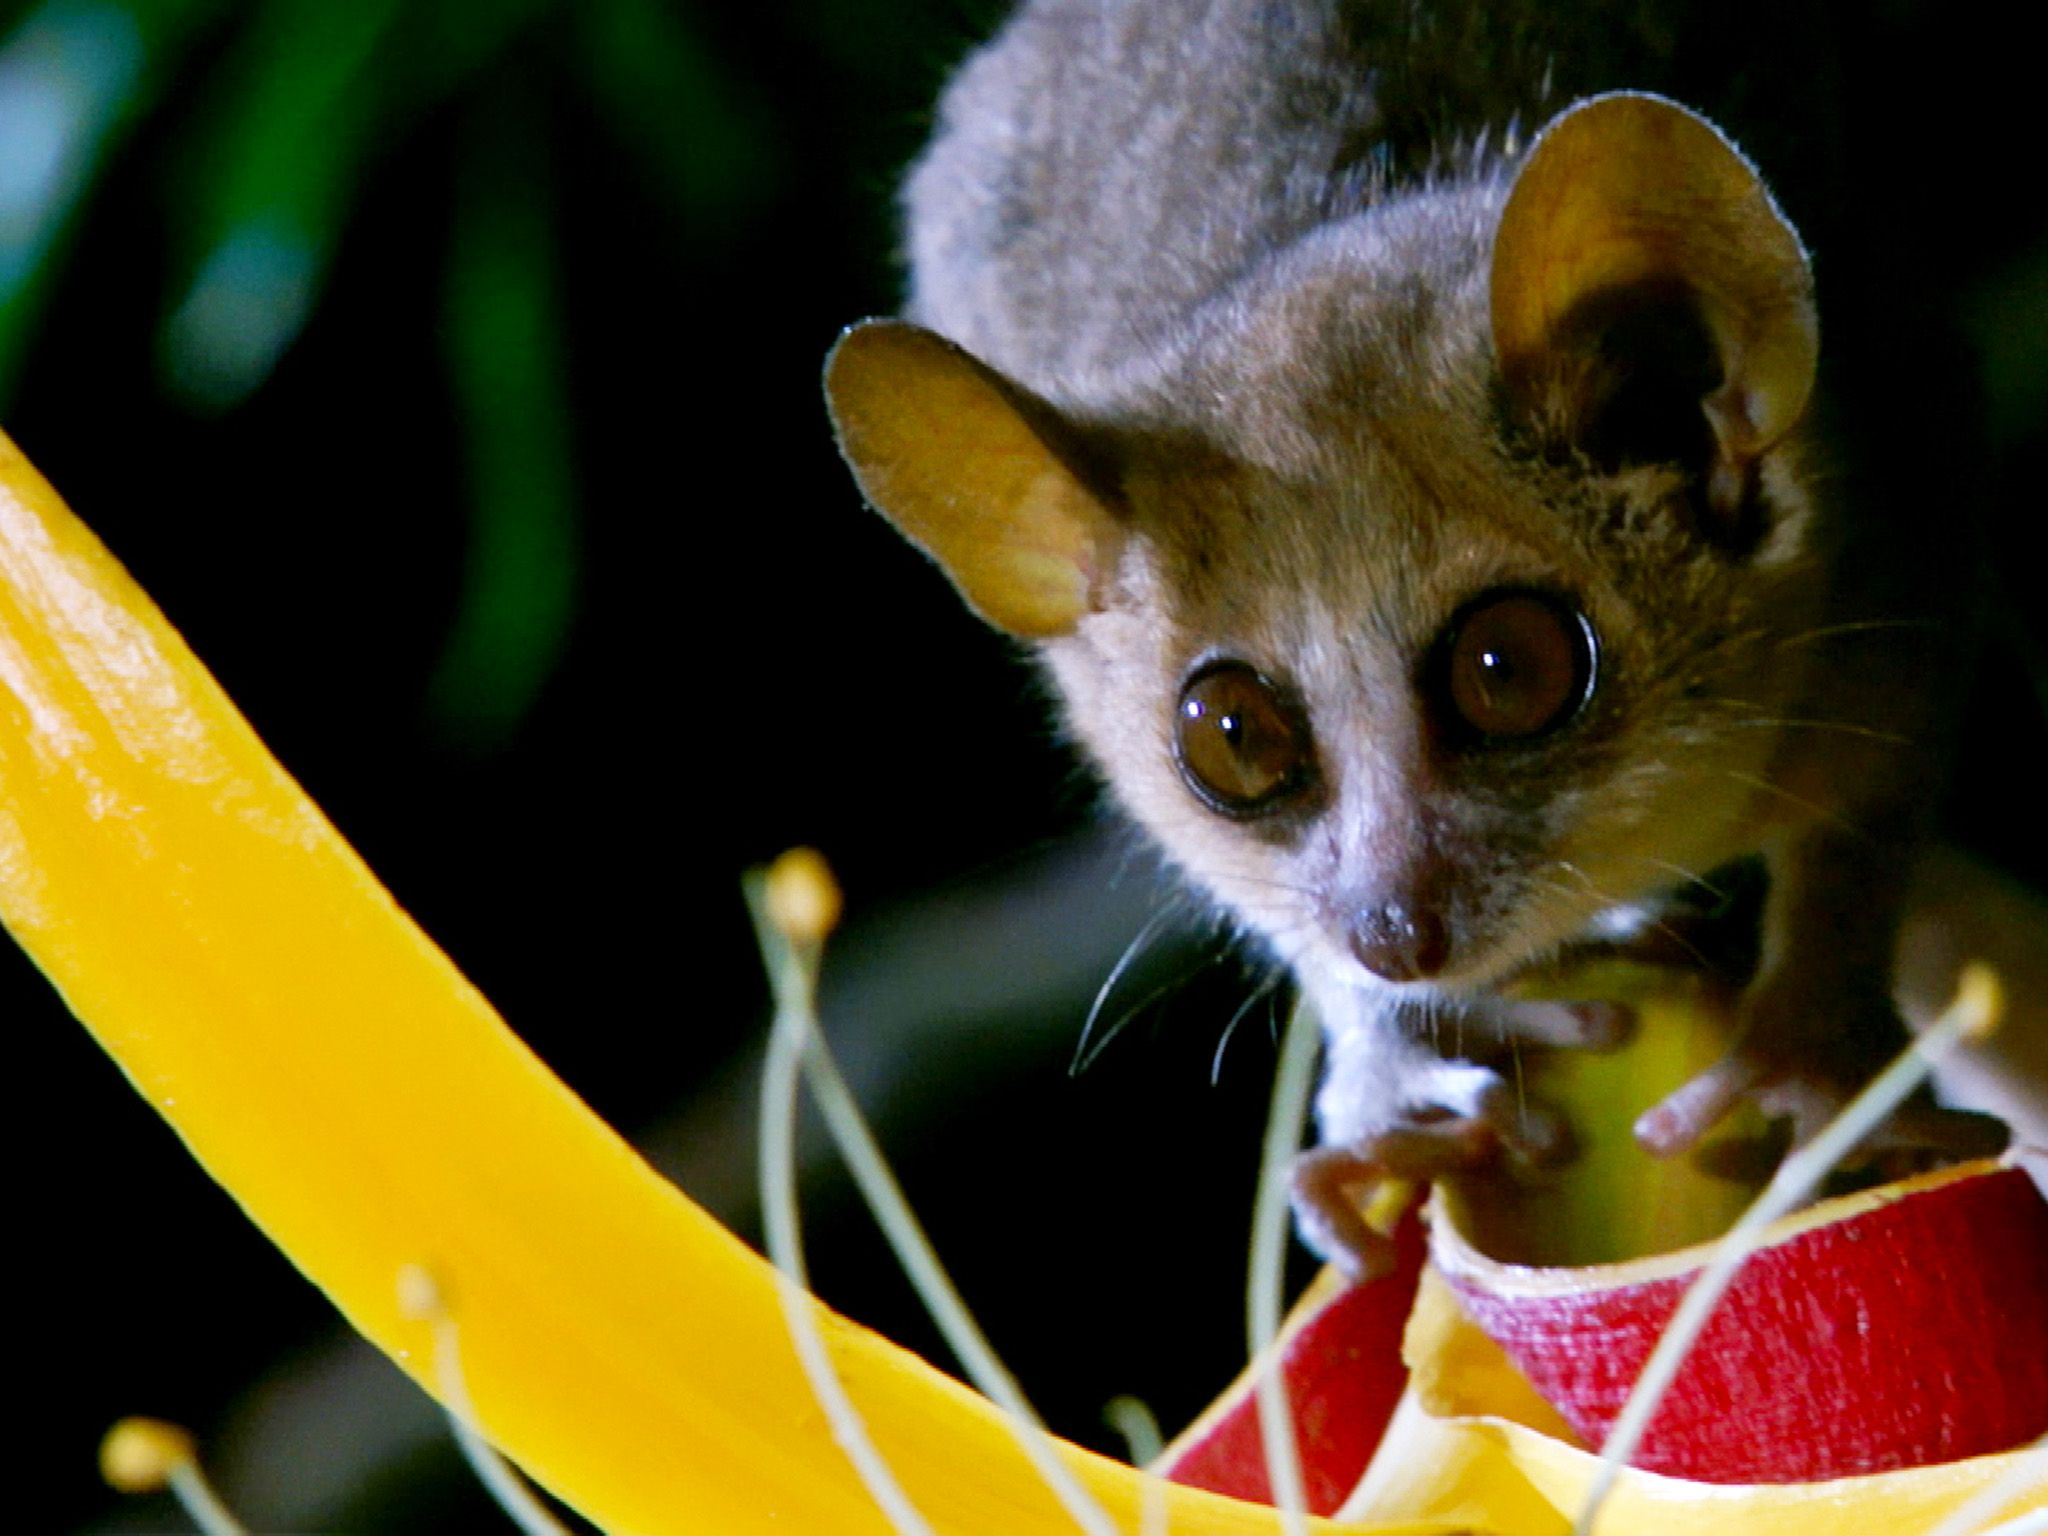 The mouse lemur weighs less than 60 grams.  This image is from Secrets of the Wild. [Фото дня - Октябрь 2014]